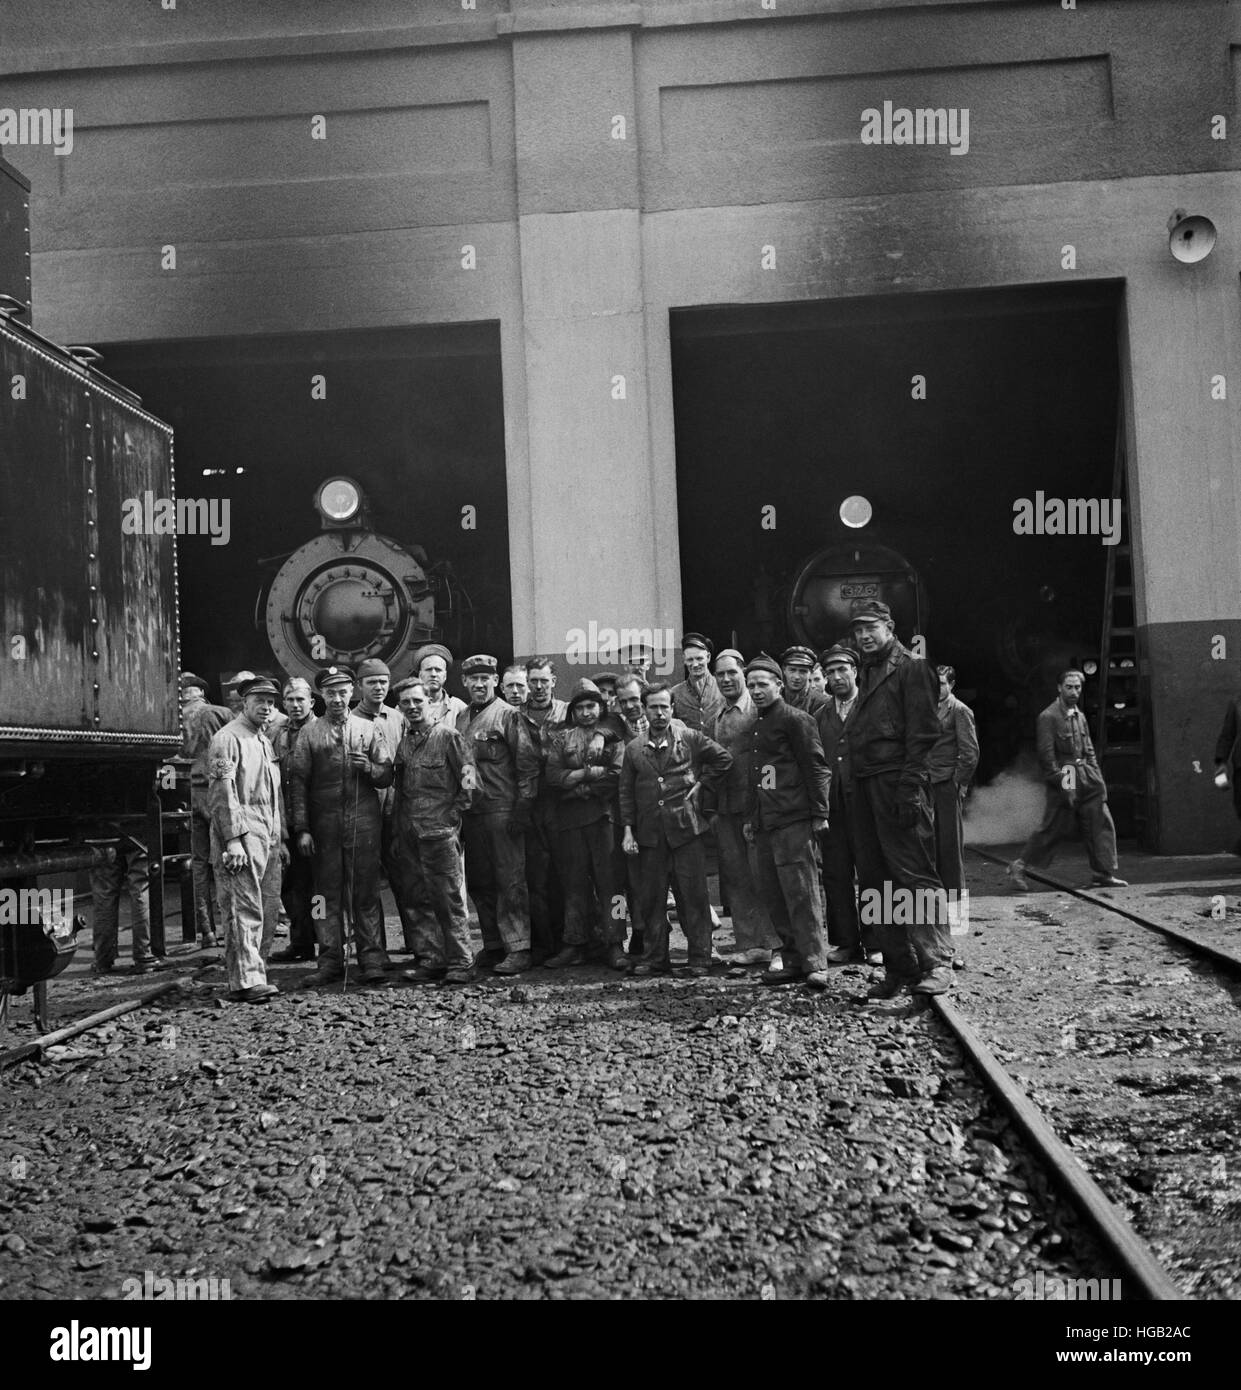 American and British railroad workers at a roundhouse somewhere in Iran, 1943. - Stock Image